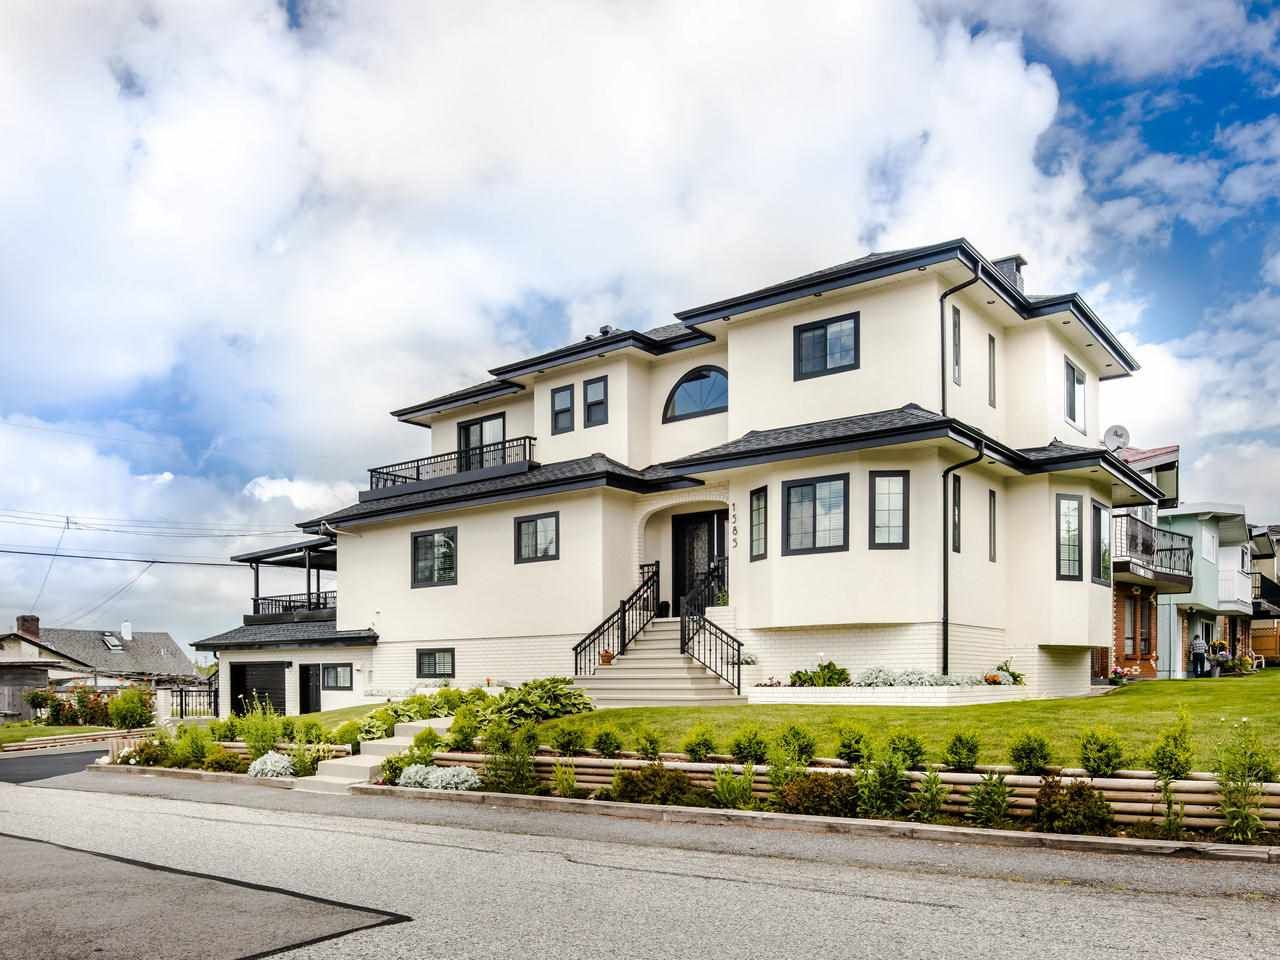 Main Photo: 1585 E 43RD Avenue in Vancouver: Knight House for sale (Vancouver East)  : MLS®# R2462741